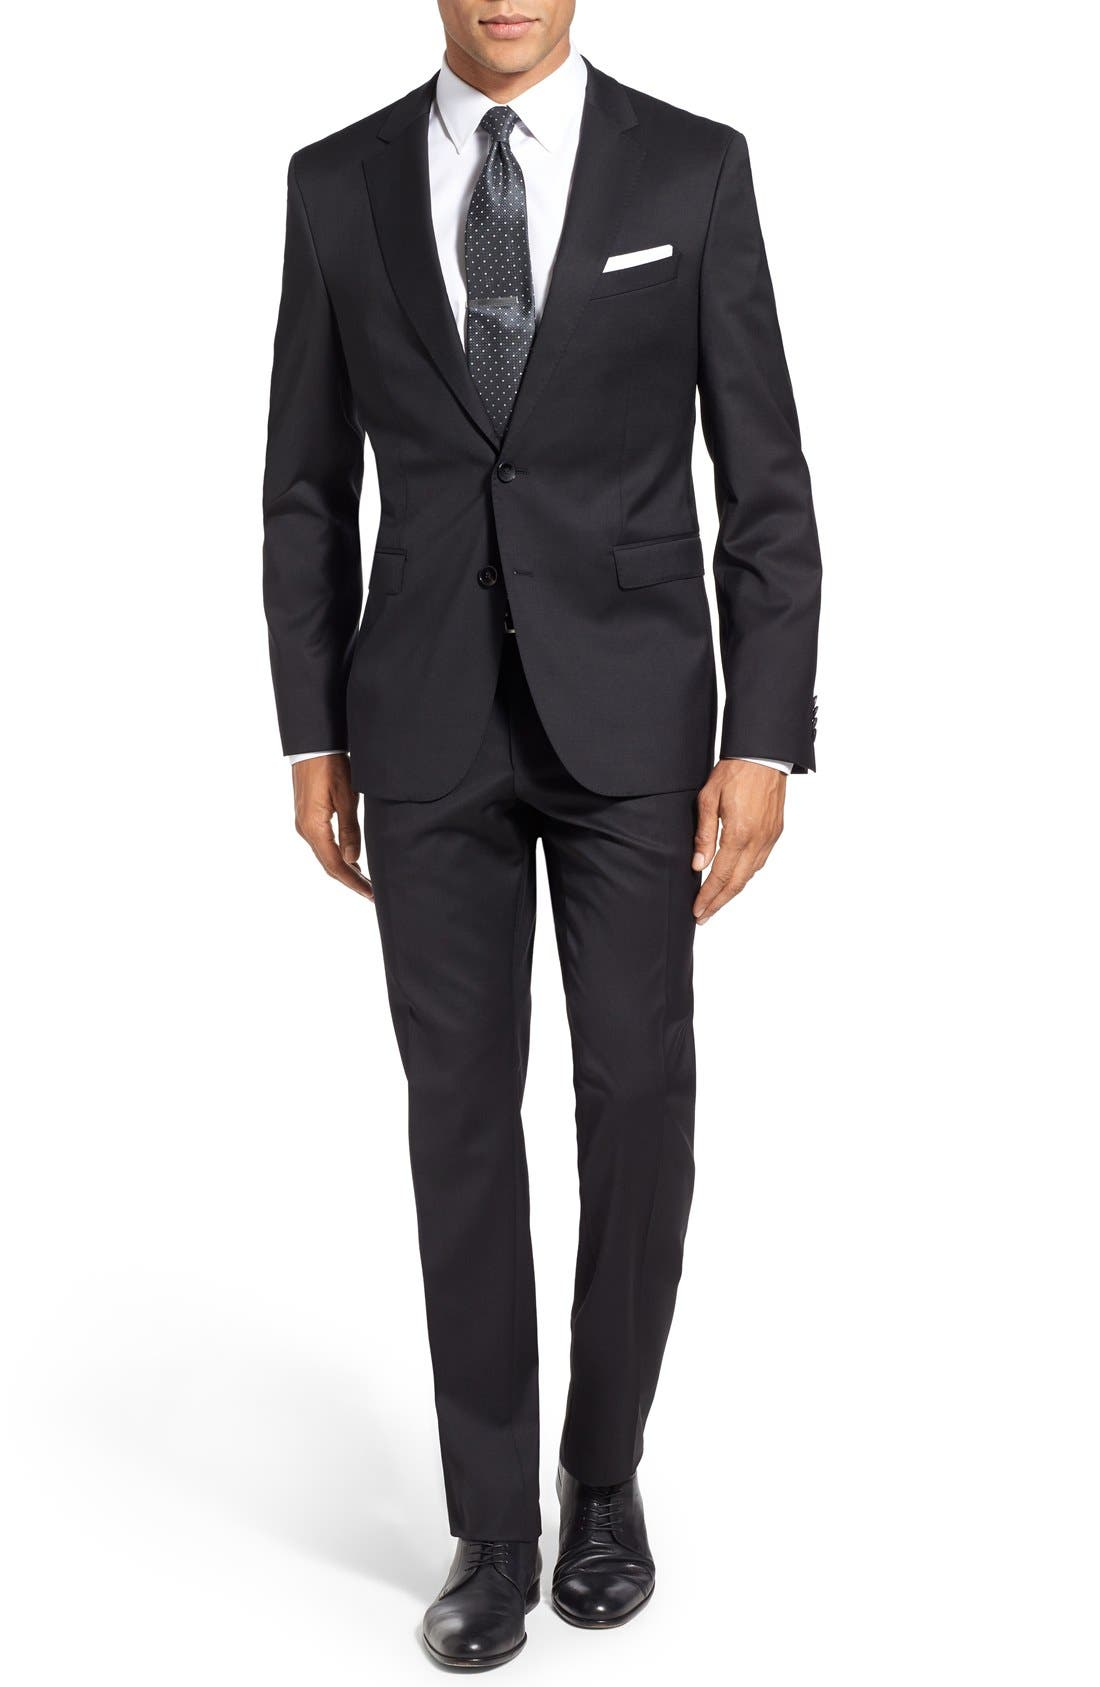 Alternate Image 1 Selected - BOSS Ryan/Win Extra Trim Fit Solid Wool Suit